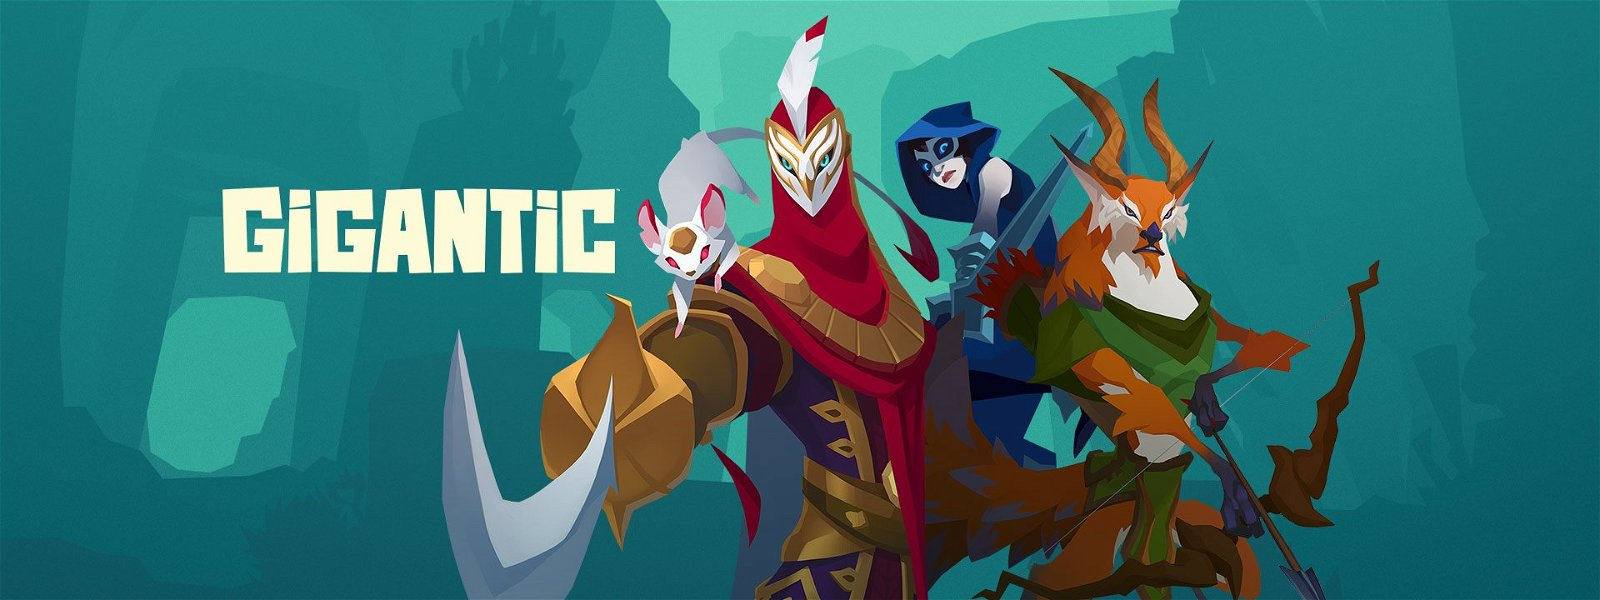 Gigantic Best Heroes